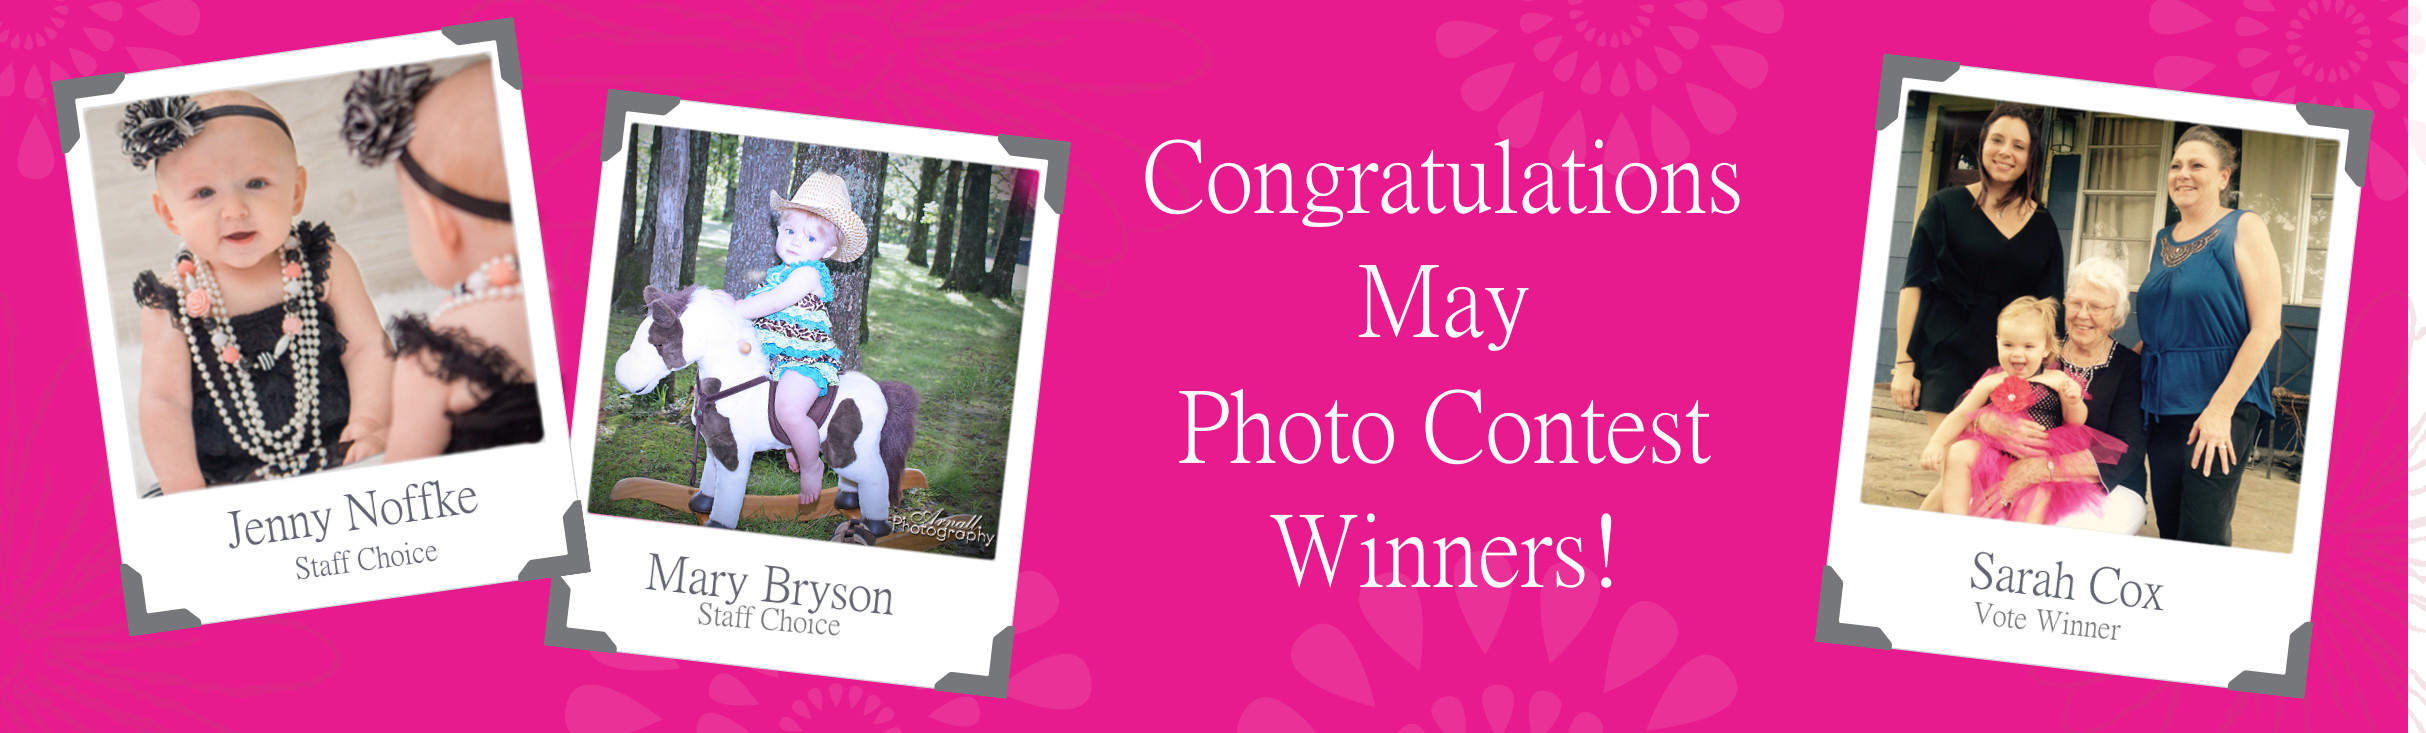 June photo contest kristyandbryce Image collections